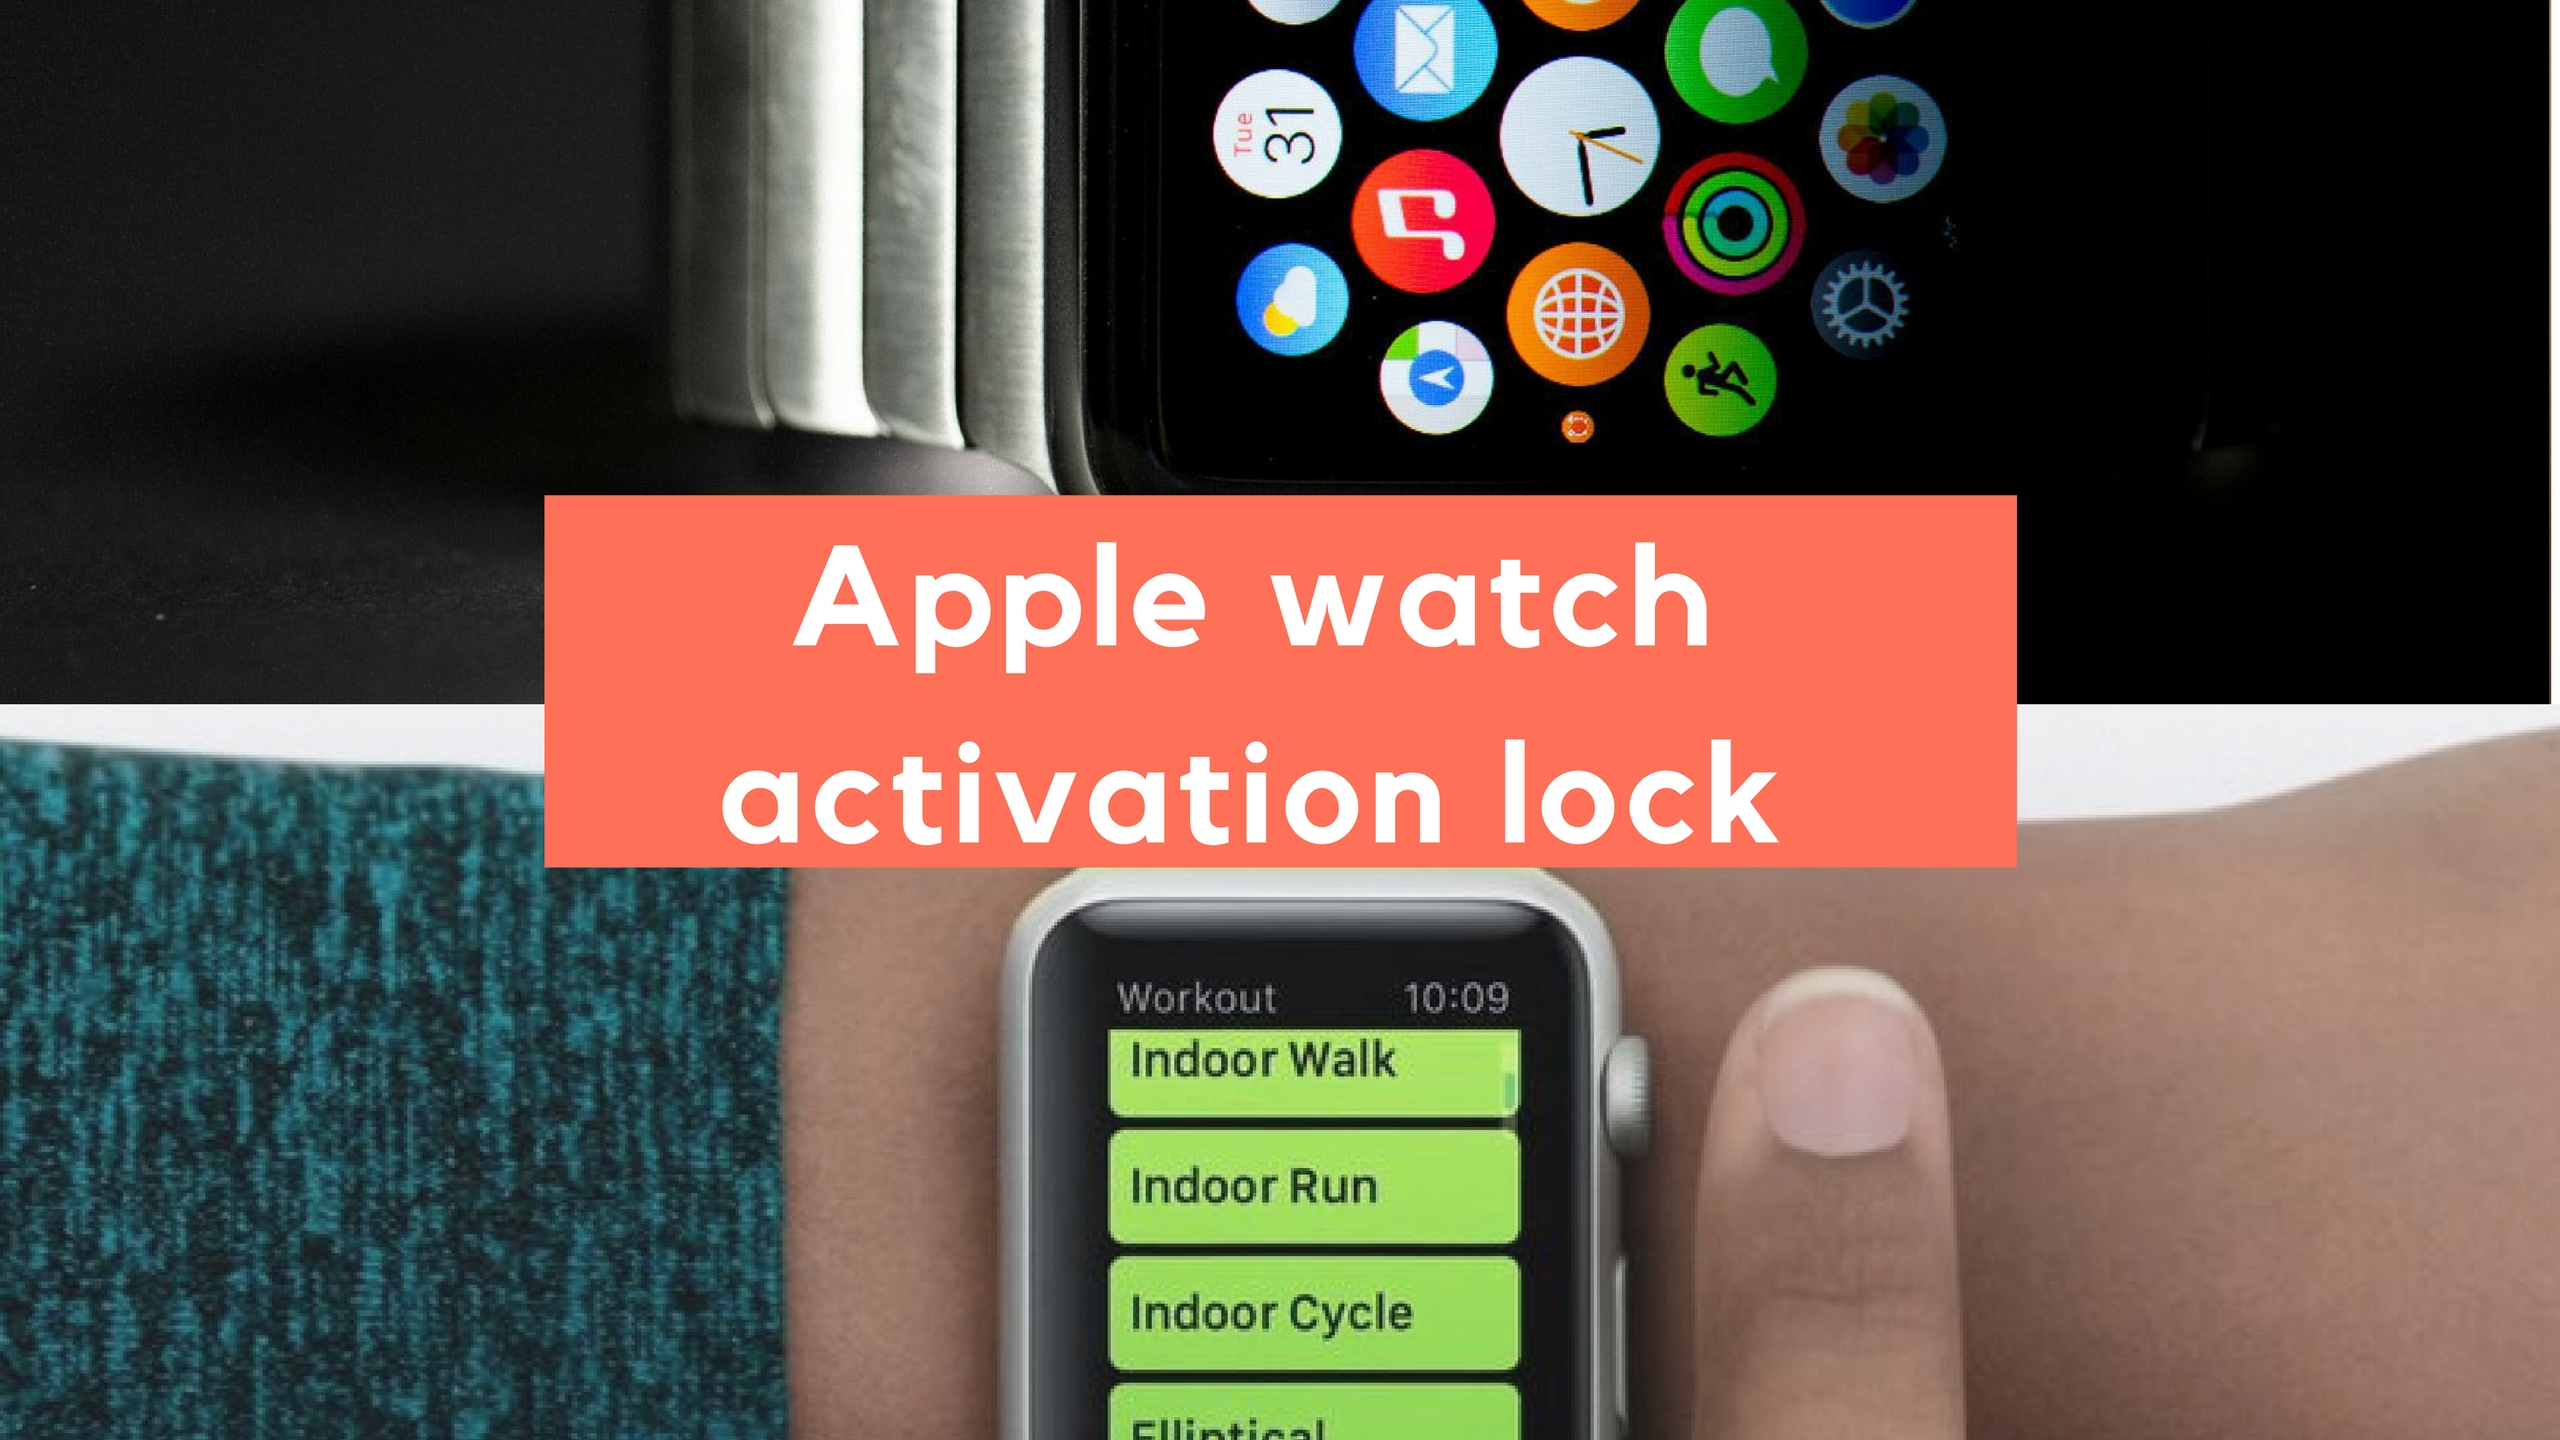 About Activation Lock on your Apple Watch: Disable activation lock apple watch: Apple watch activation lock Removal: